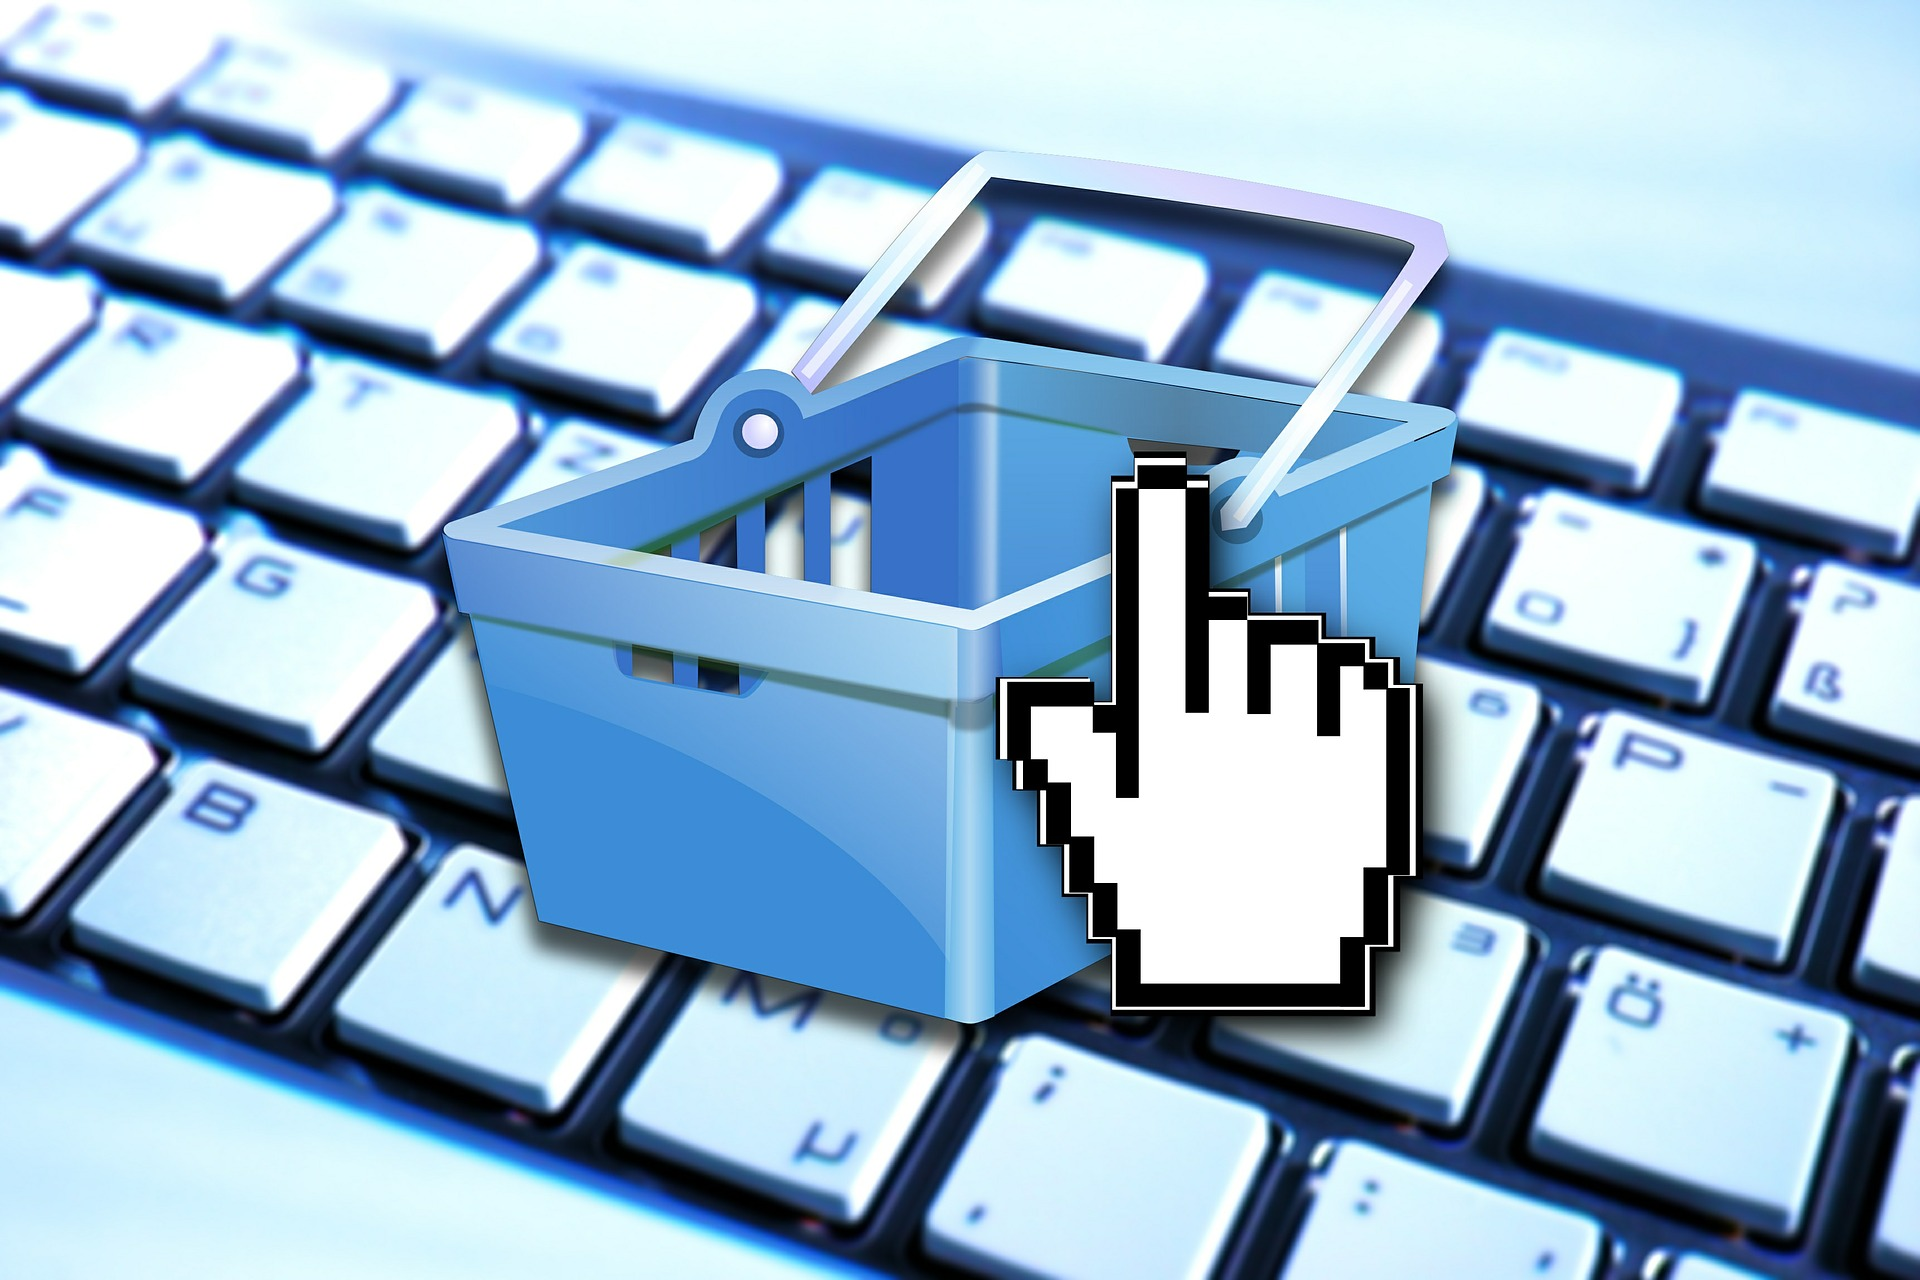 Site search is important for e-commerce